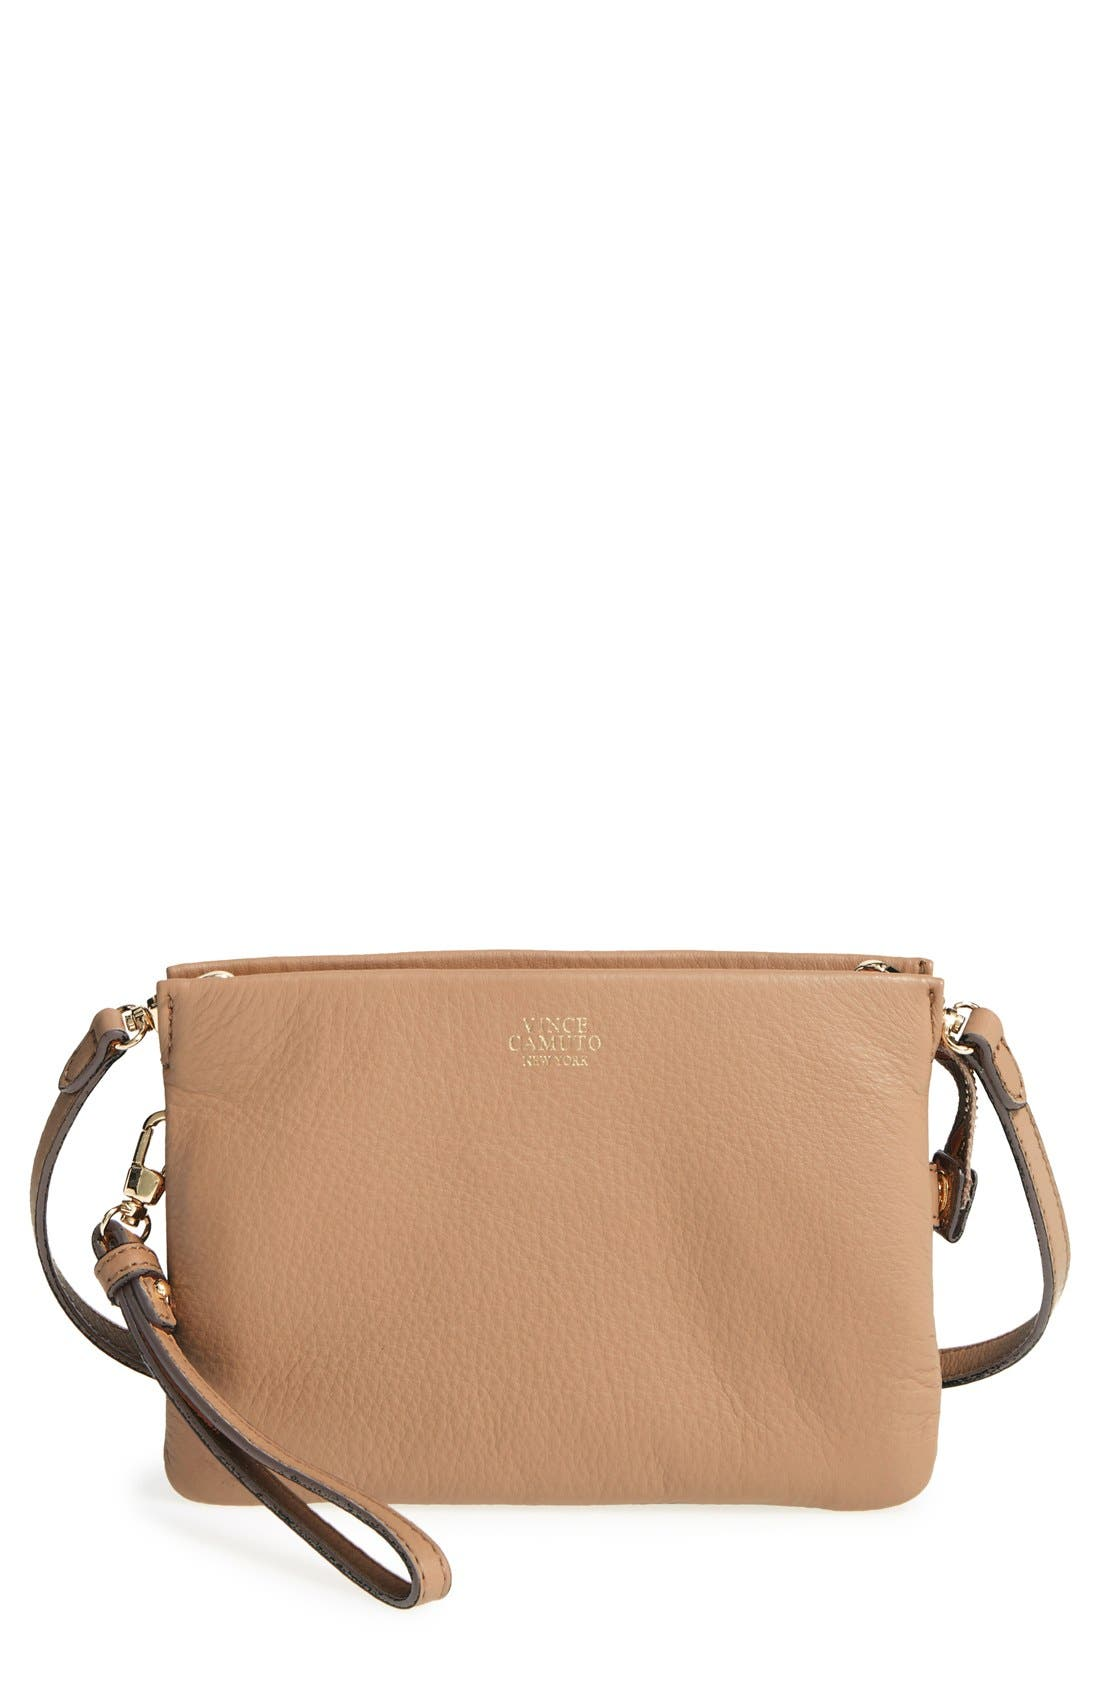 'Cami' Leather Crossbody Bag,                             Main thumbnail 13, color,